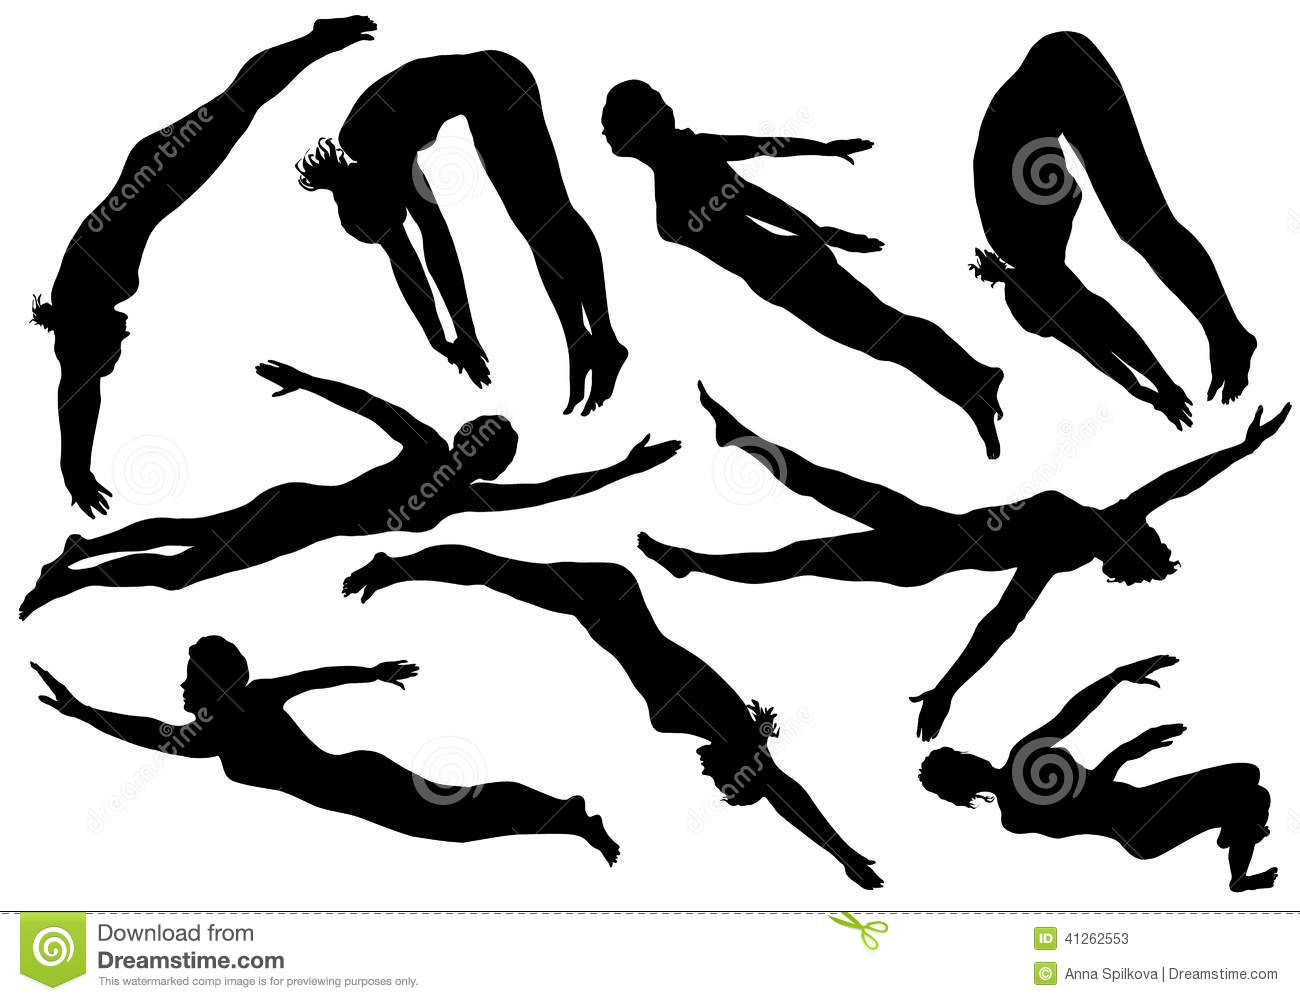 Swimming Silhouettes Of Women Stock Vector - Image: 41262553